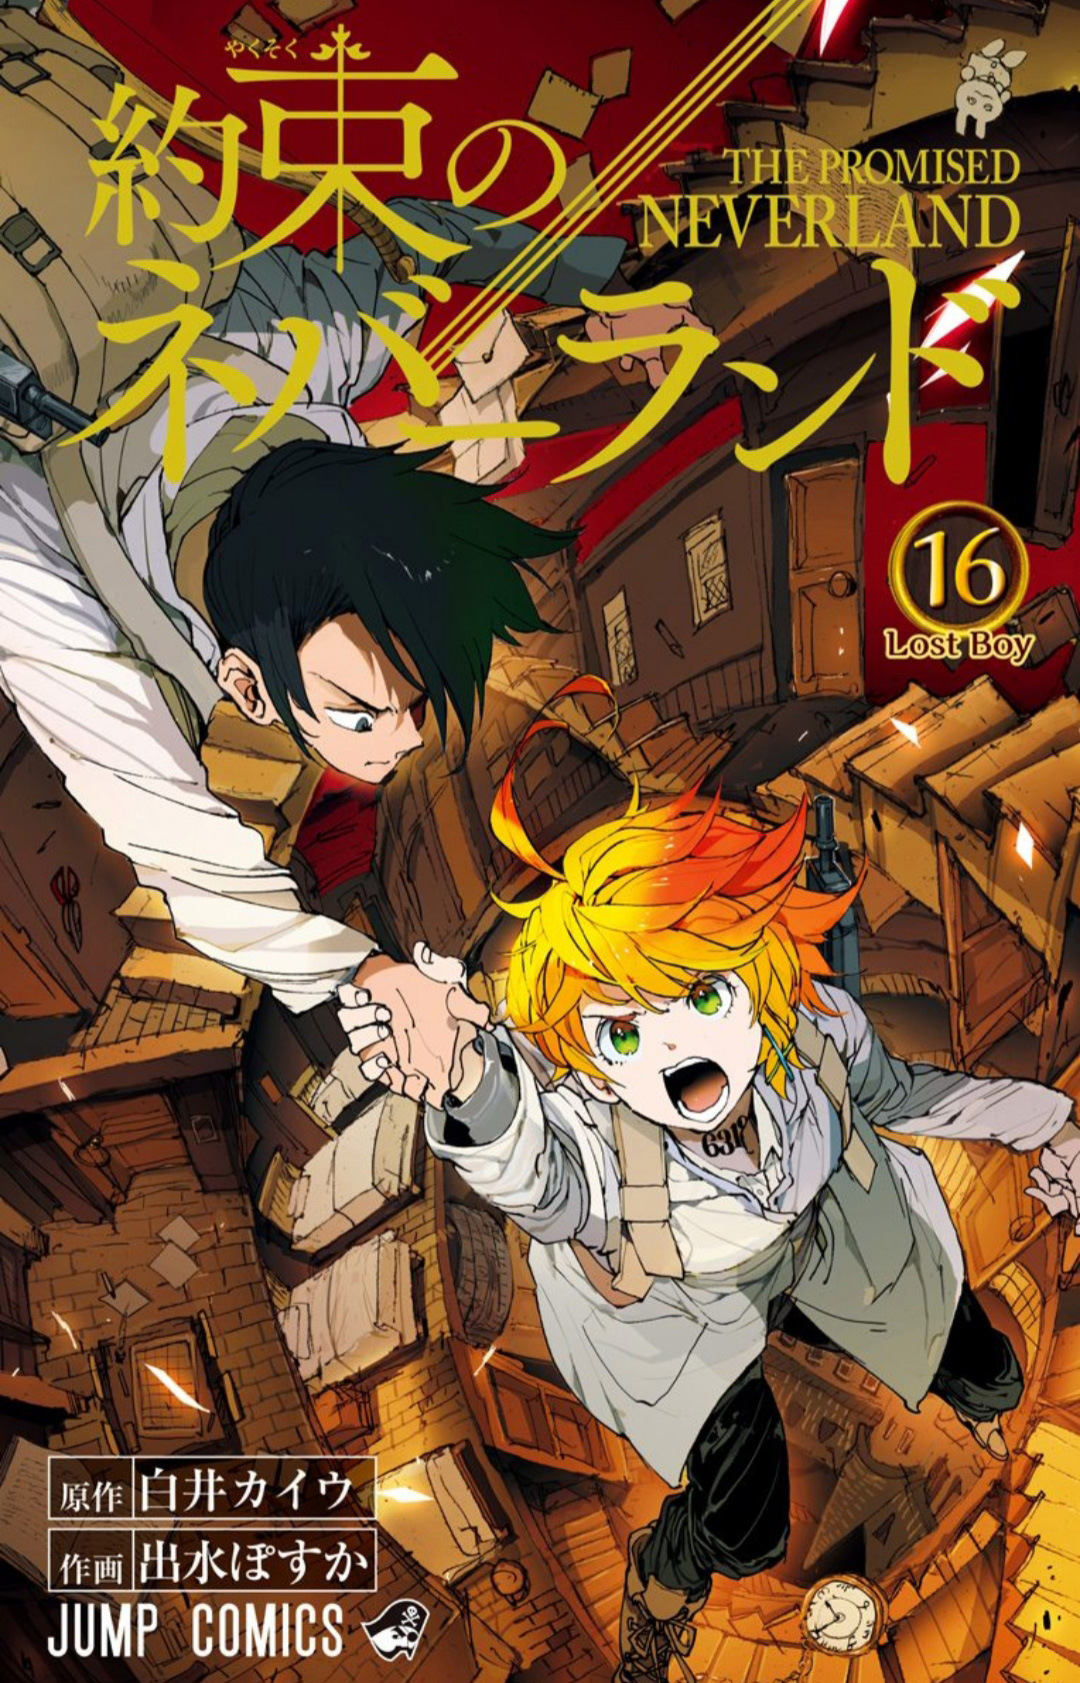 Capa do volume 16 de The Promised Neverland